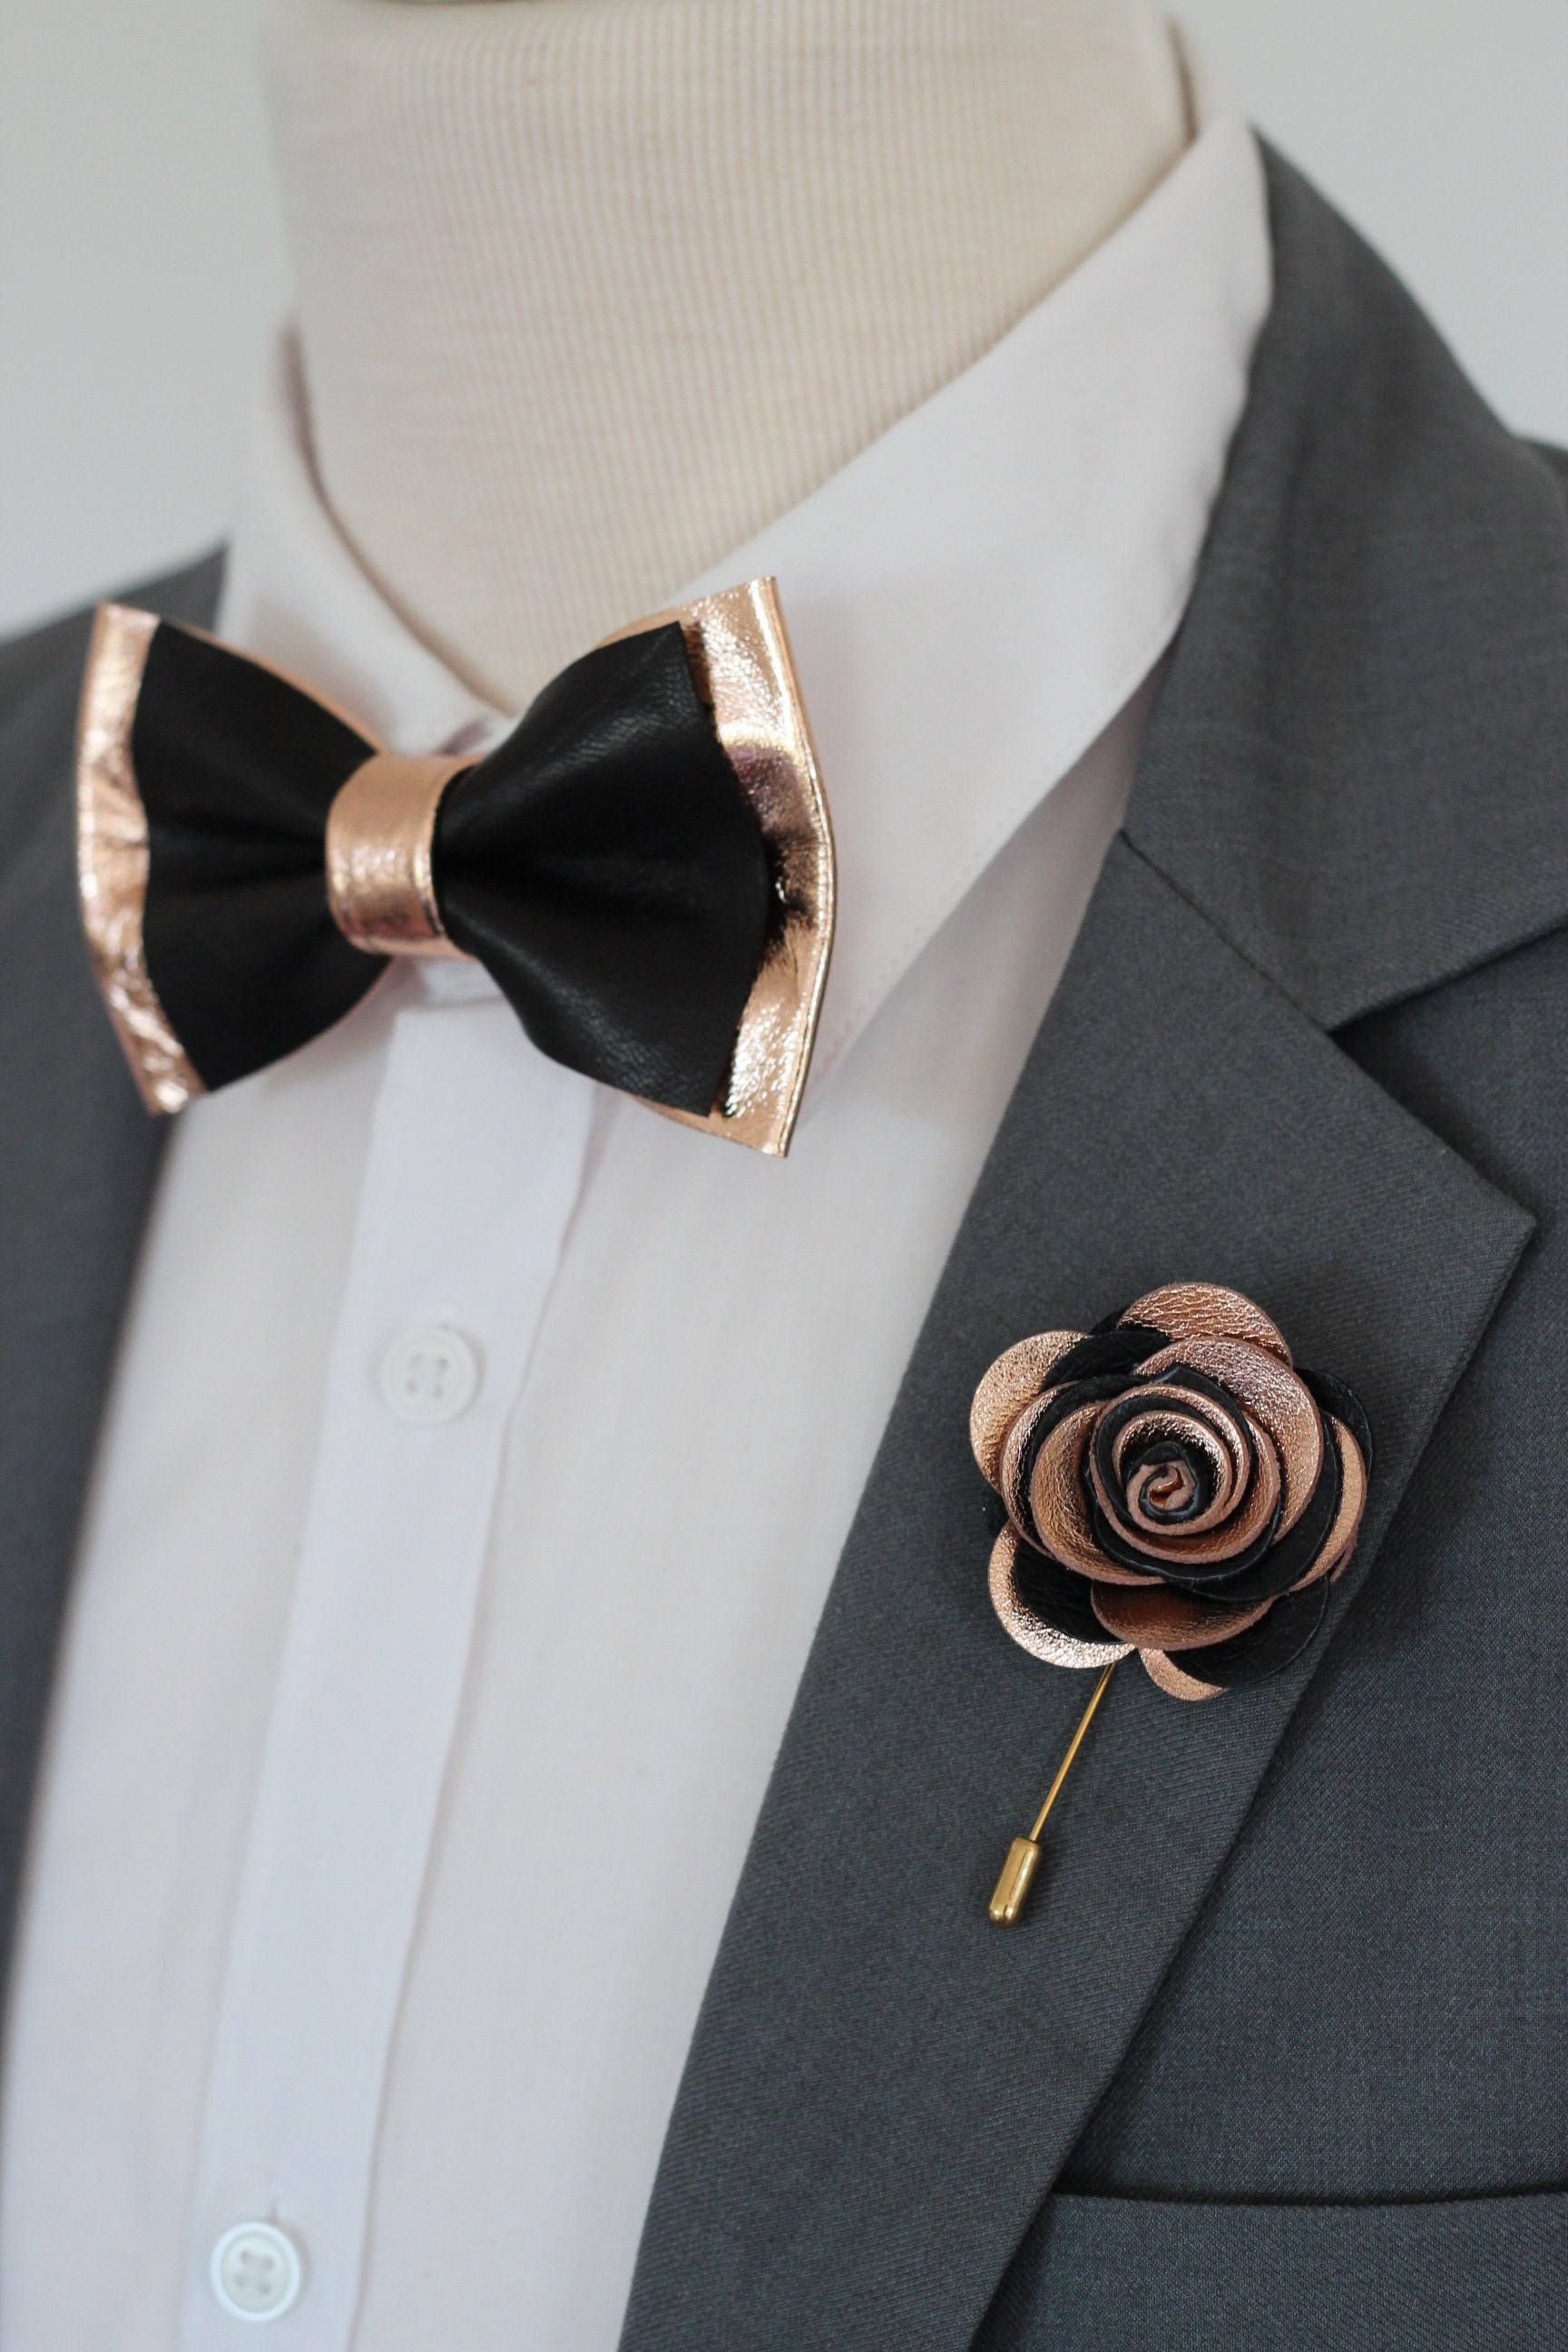 66668c206974f Rose Gold flower lapel pin,bow tie,rose gold wedding Boutonniere ...